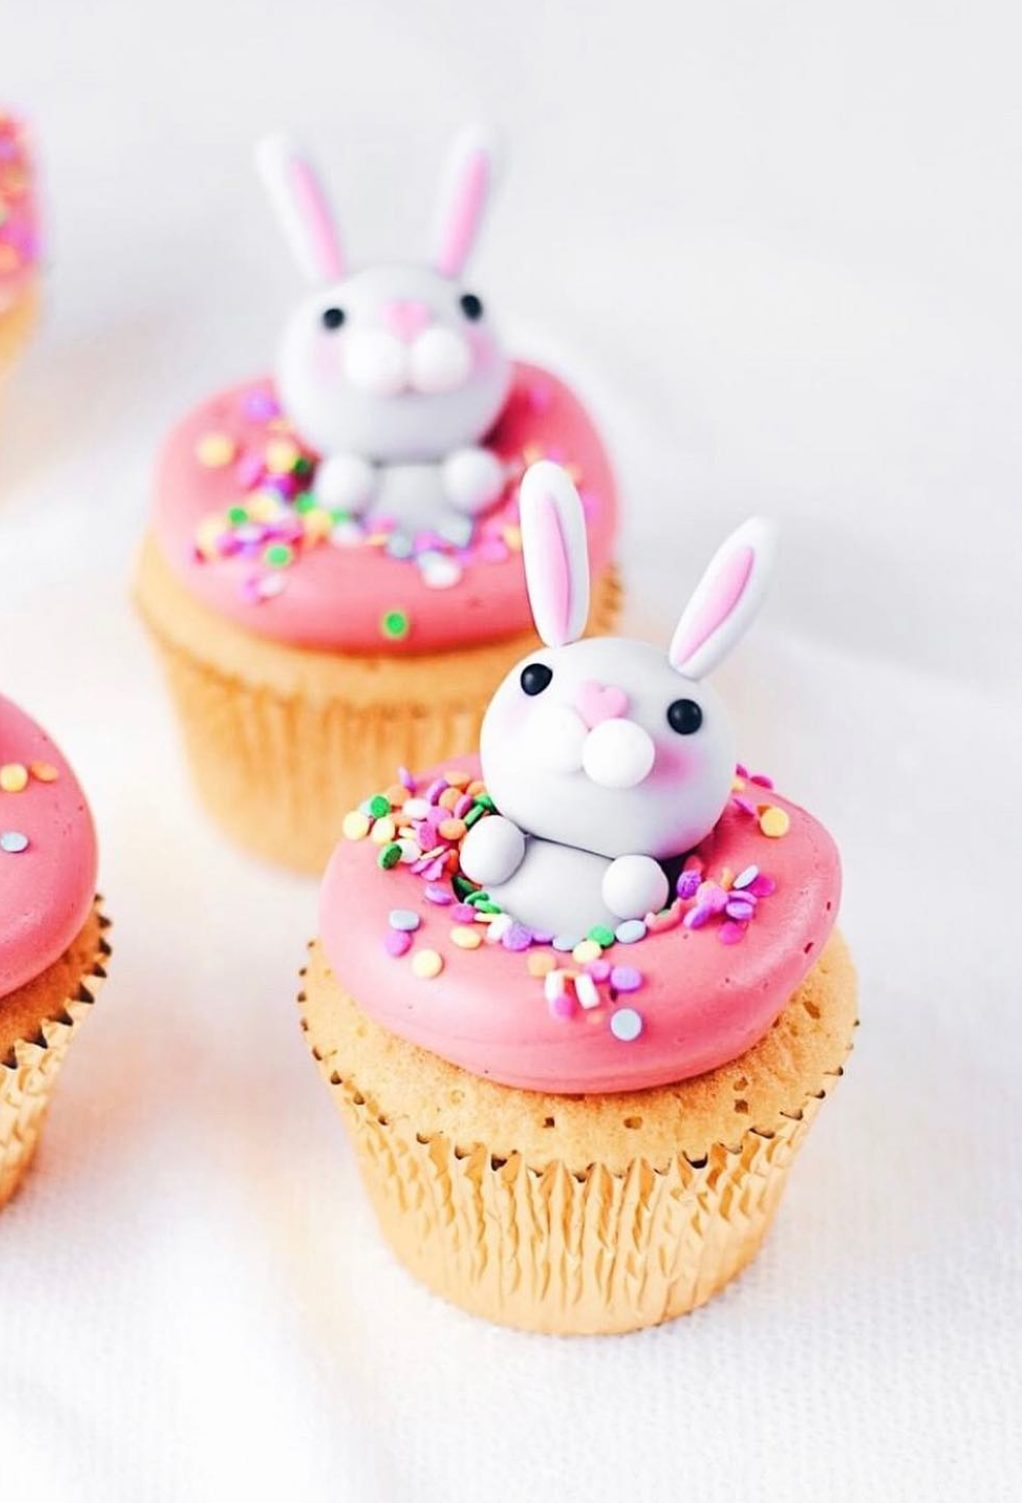 Cute Bunny and Donut Cupcakes